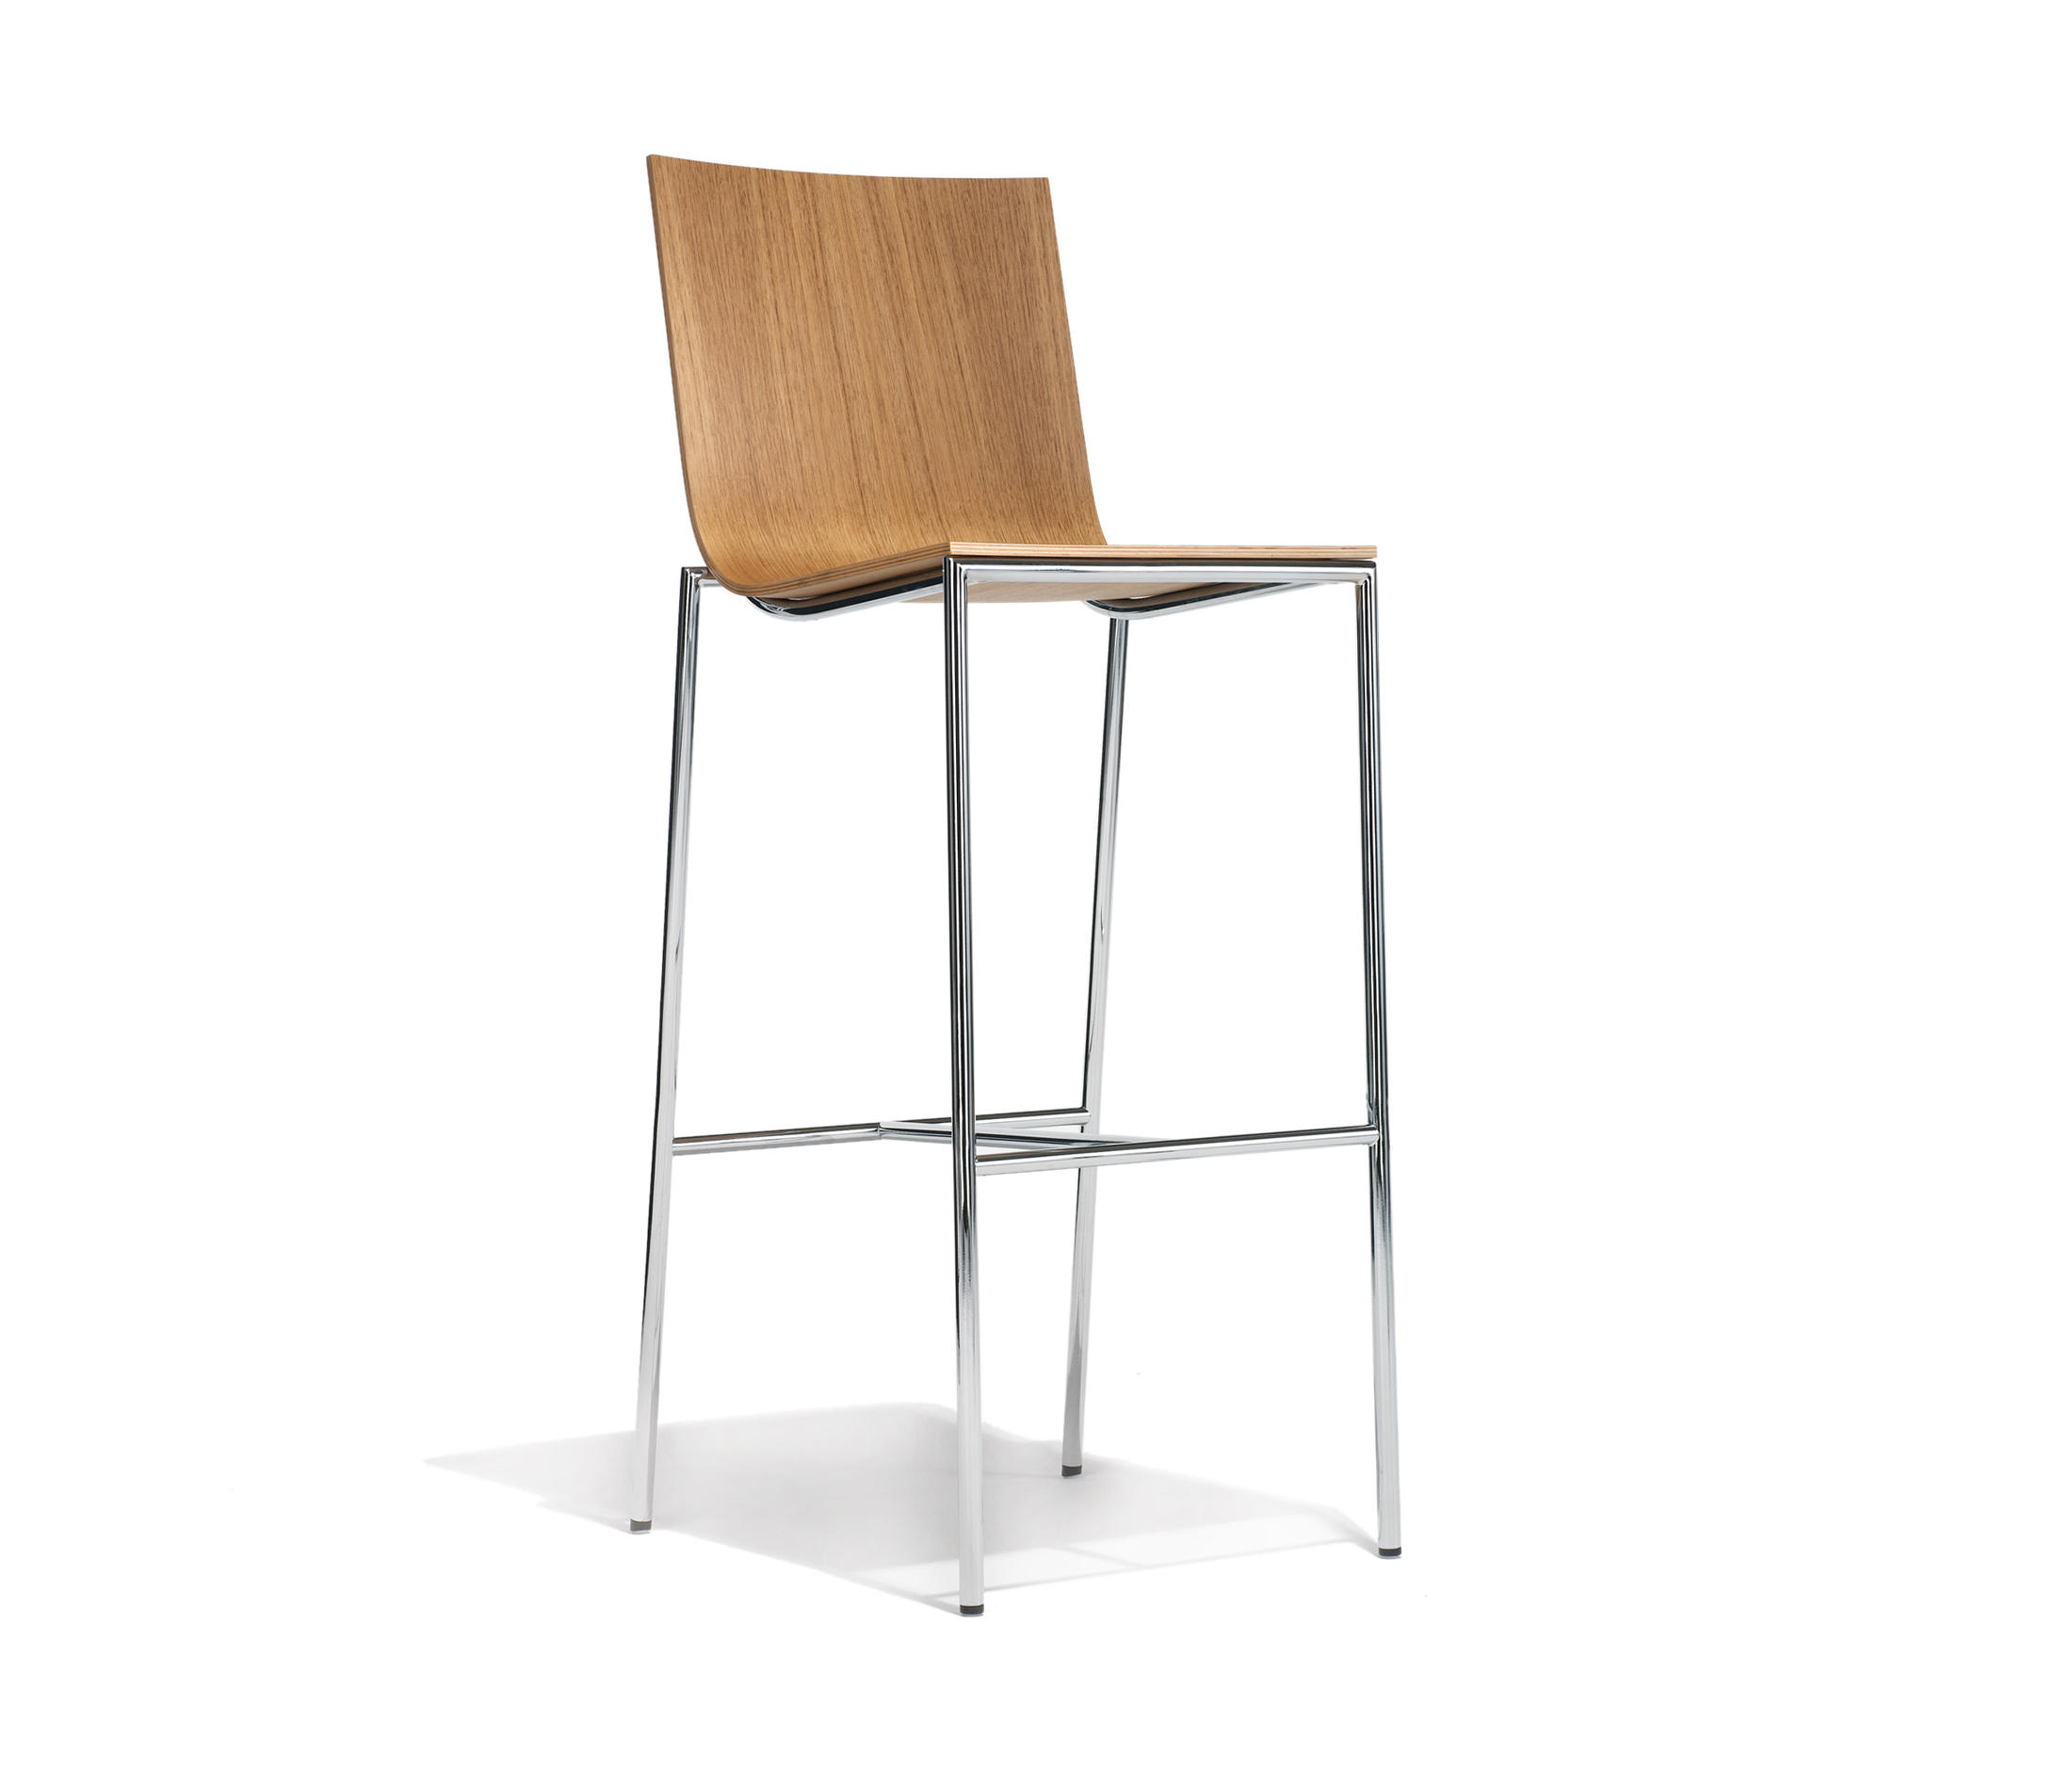 3120 0 scorpii bar stools from kusch co architonic. Black Bedroom Furniture Sets. Home Design Ideas